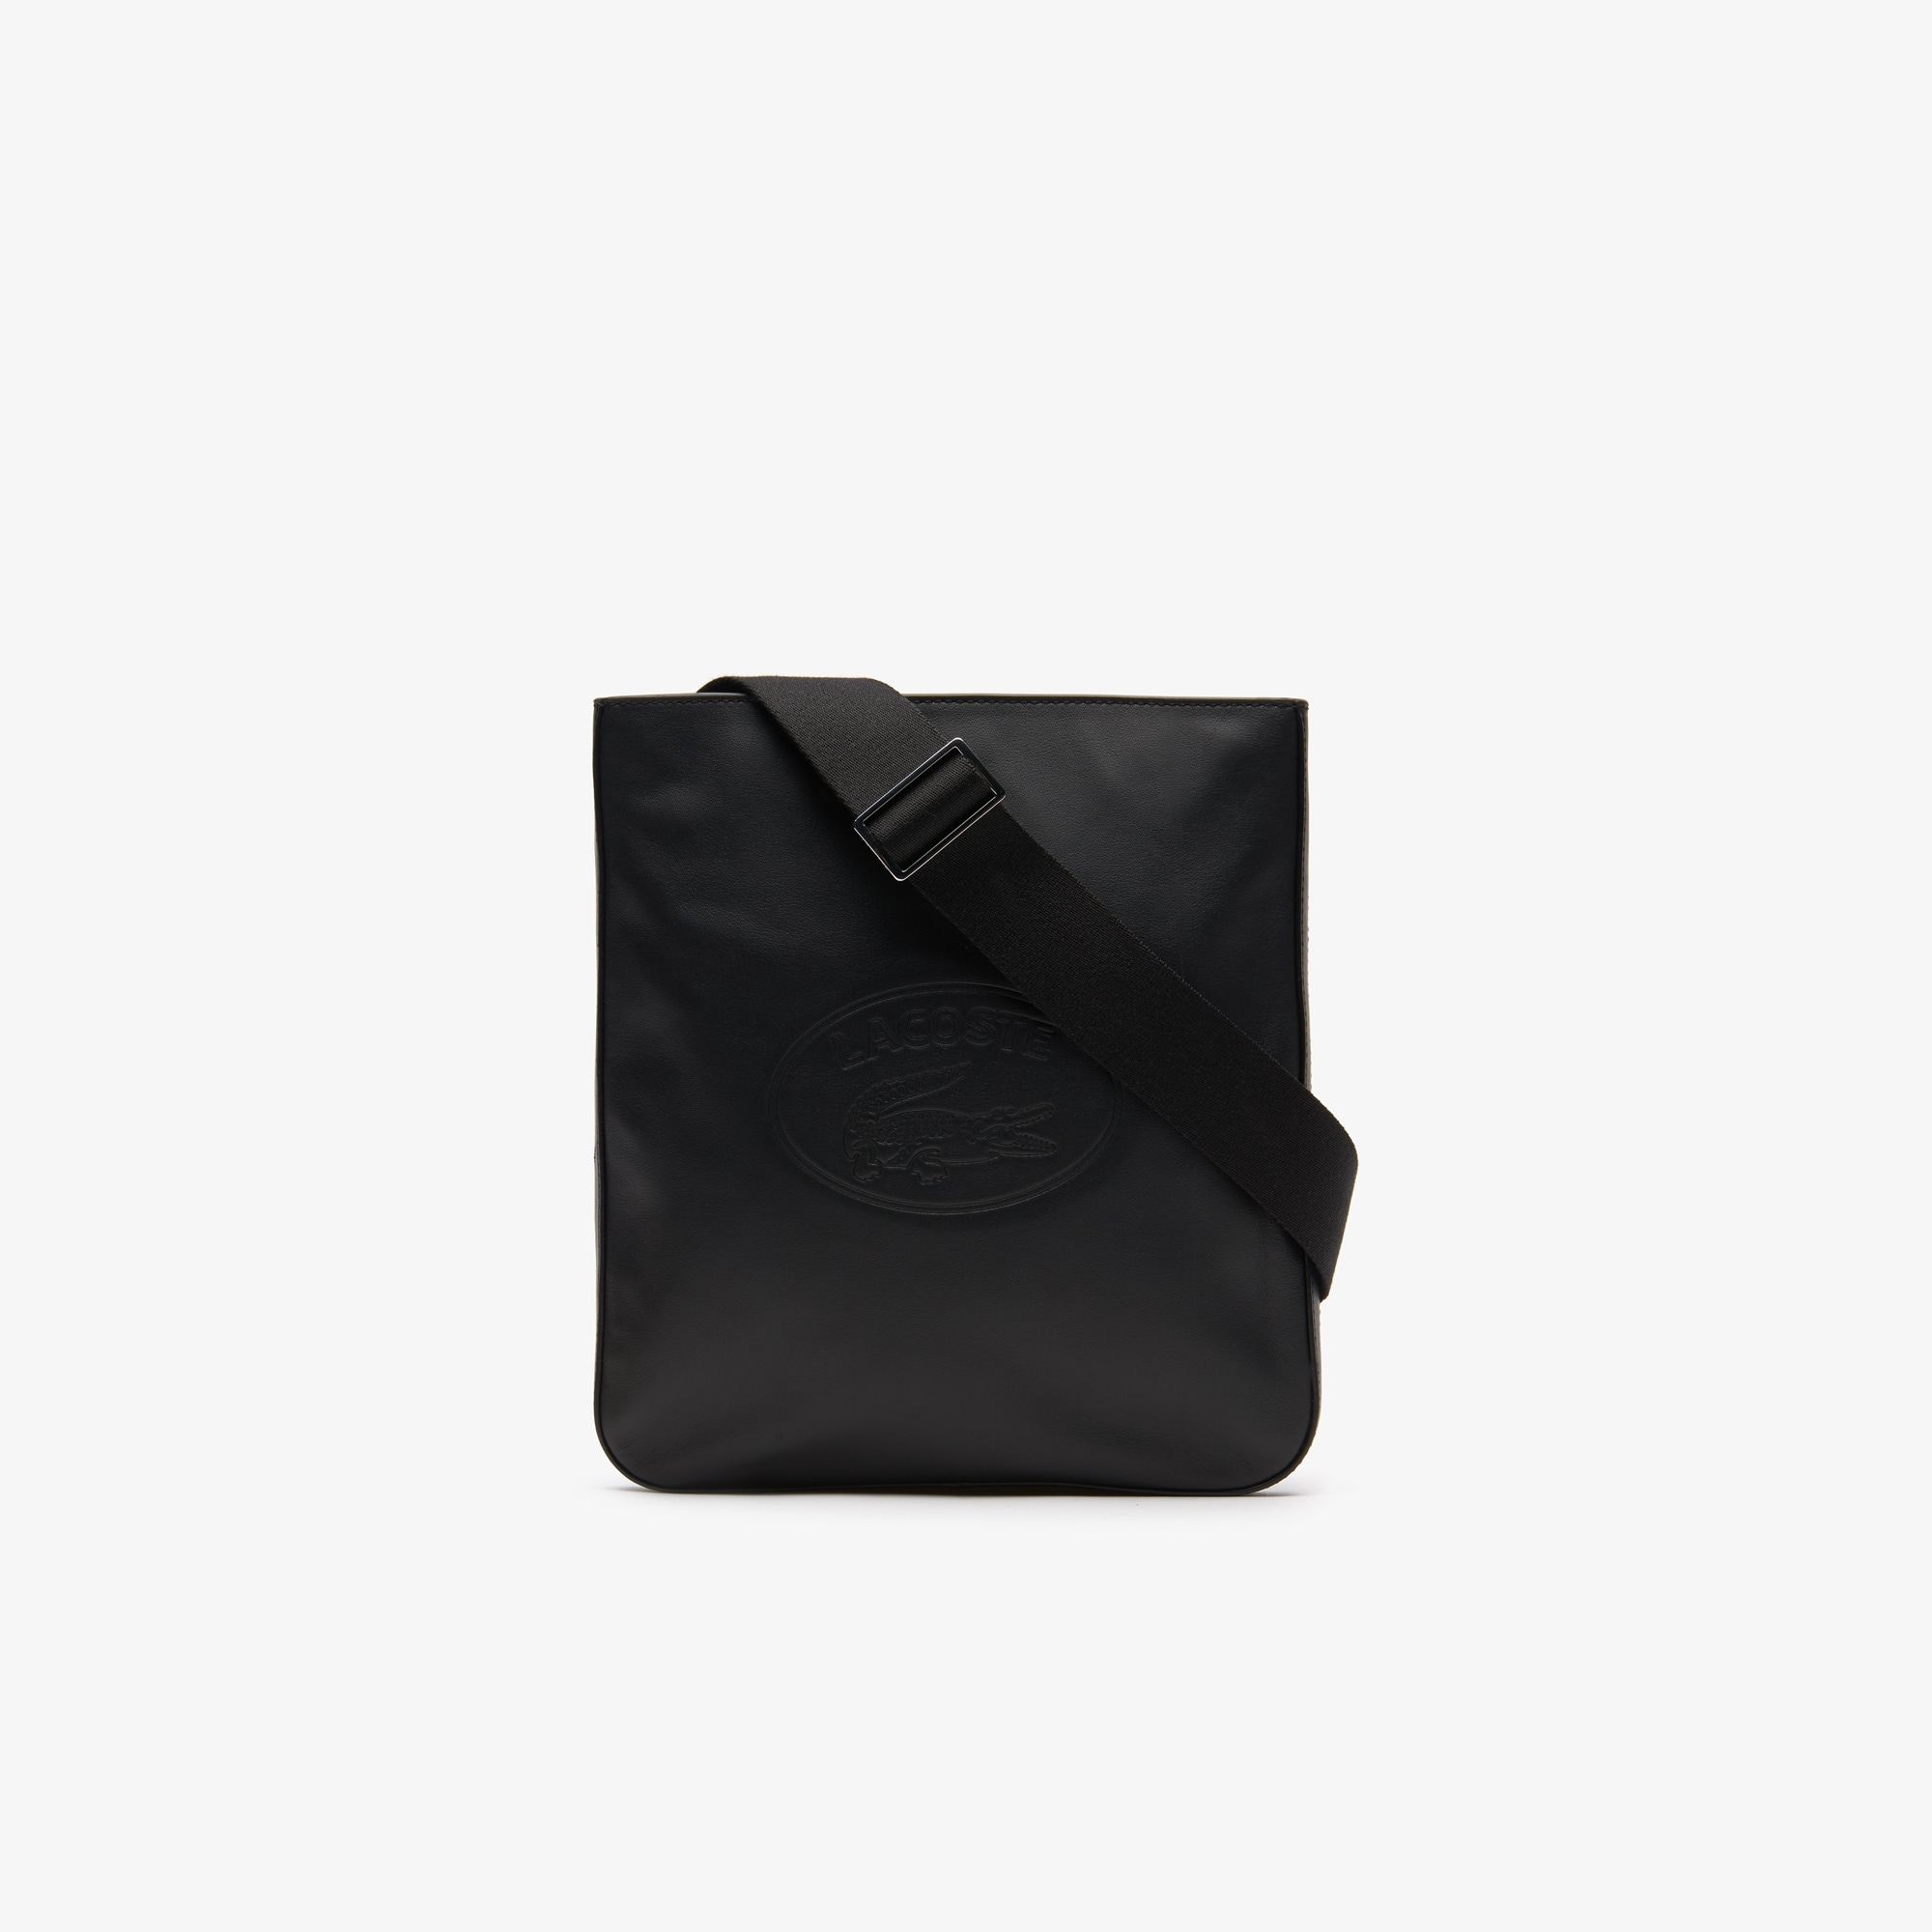 9e936fec920e Men's Wallets, Belts and Bags | Leather Goods | LACOSTE